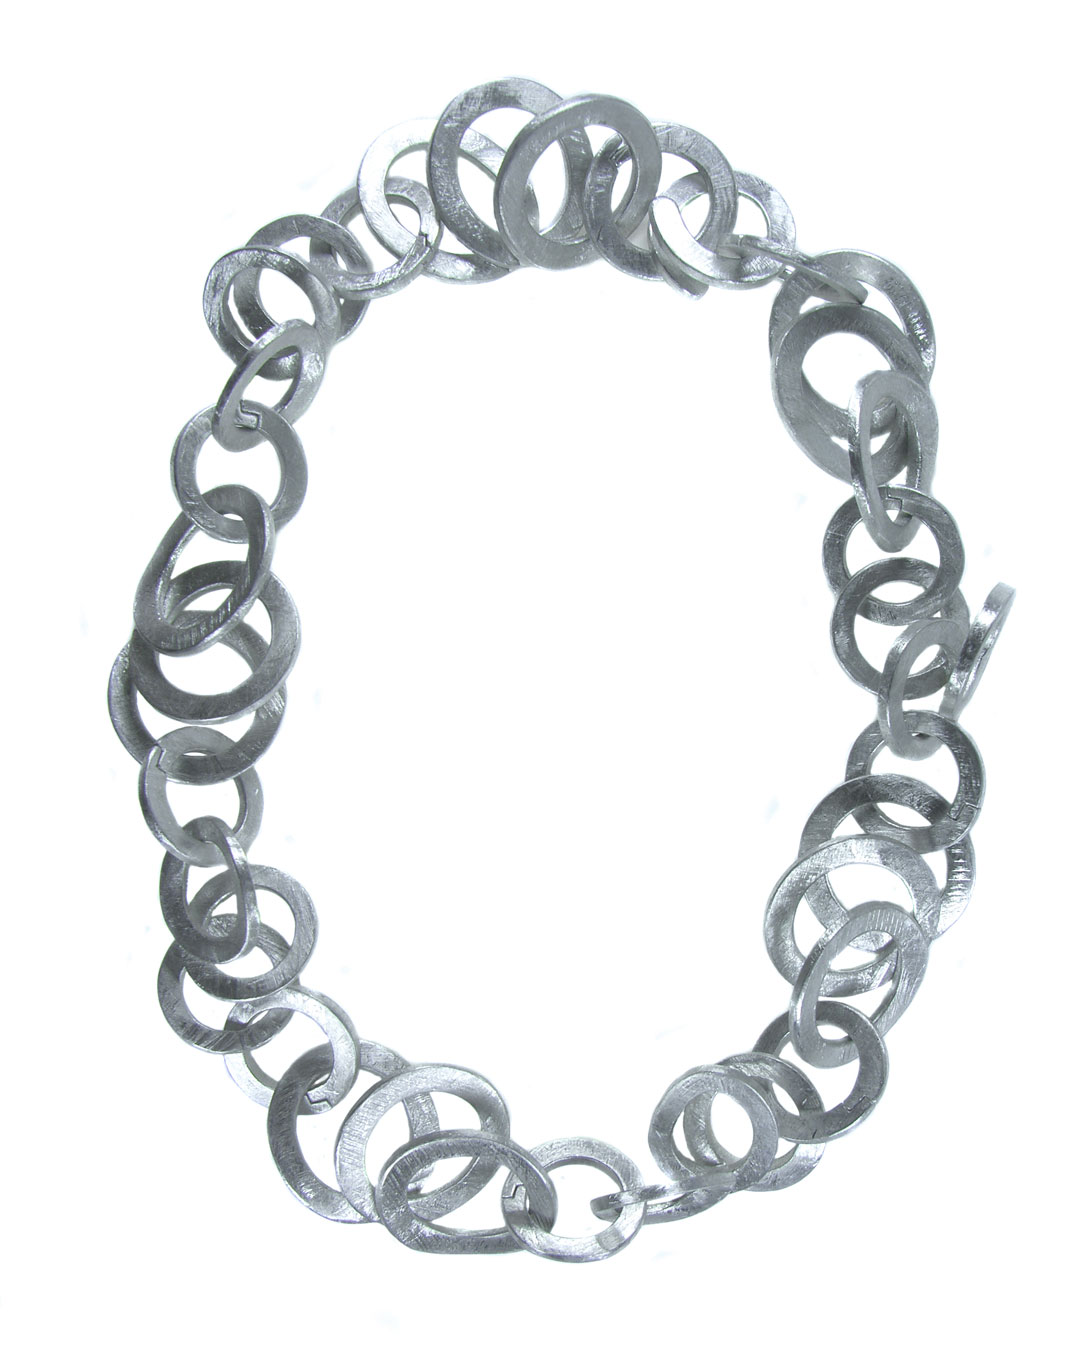 Antje Bräuer, untitled, 2008, necklace; aluminium, ø 250 mm, €1865